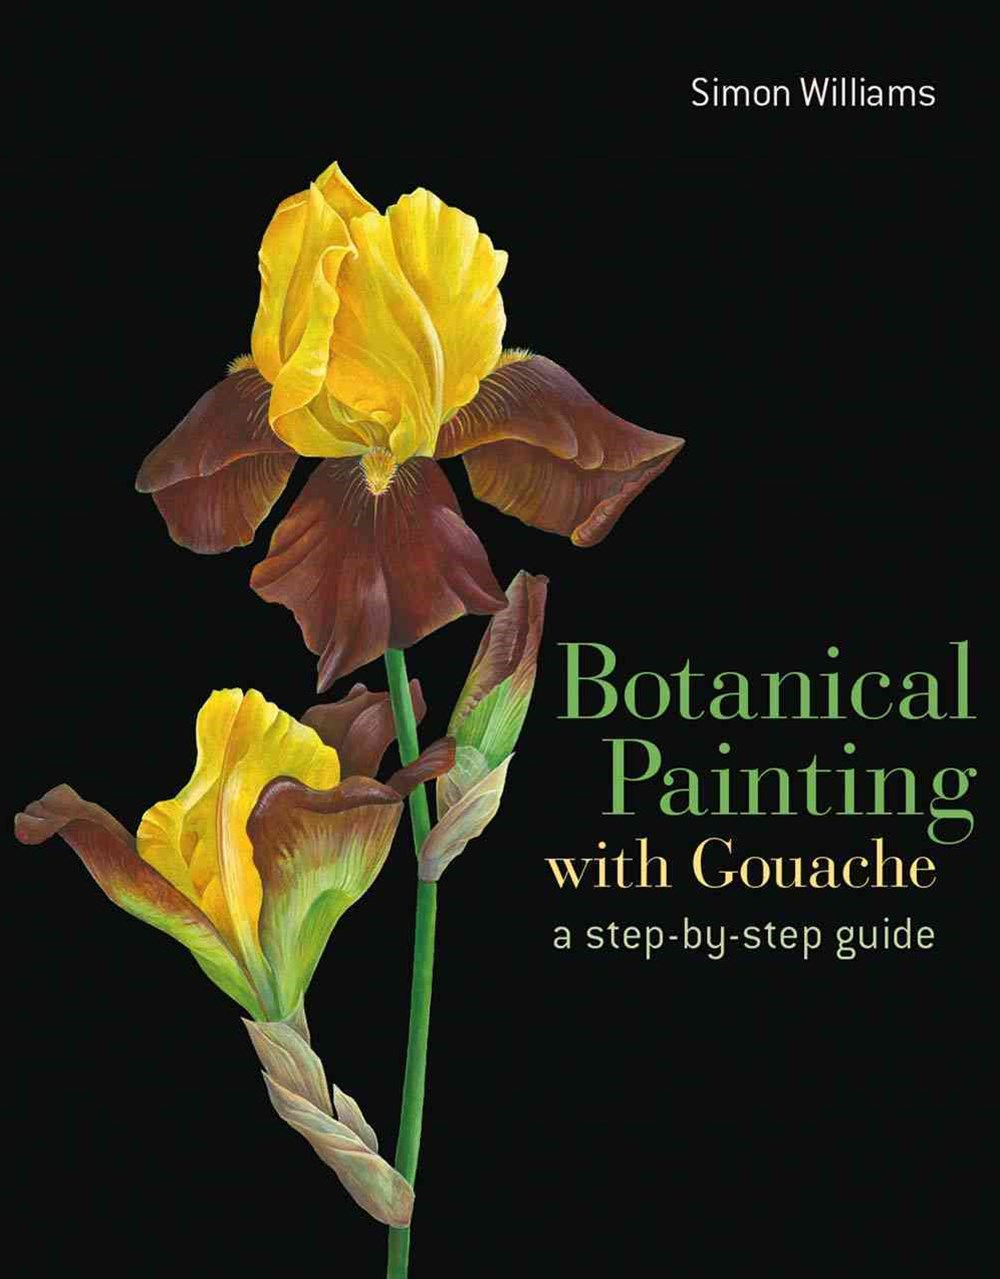 Botanical Painting in Gouache